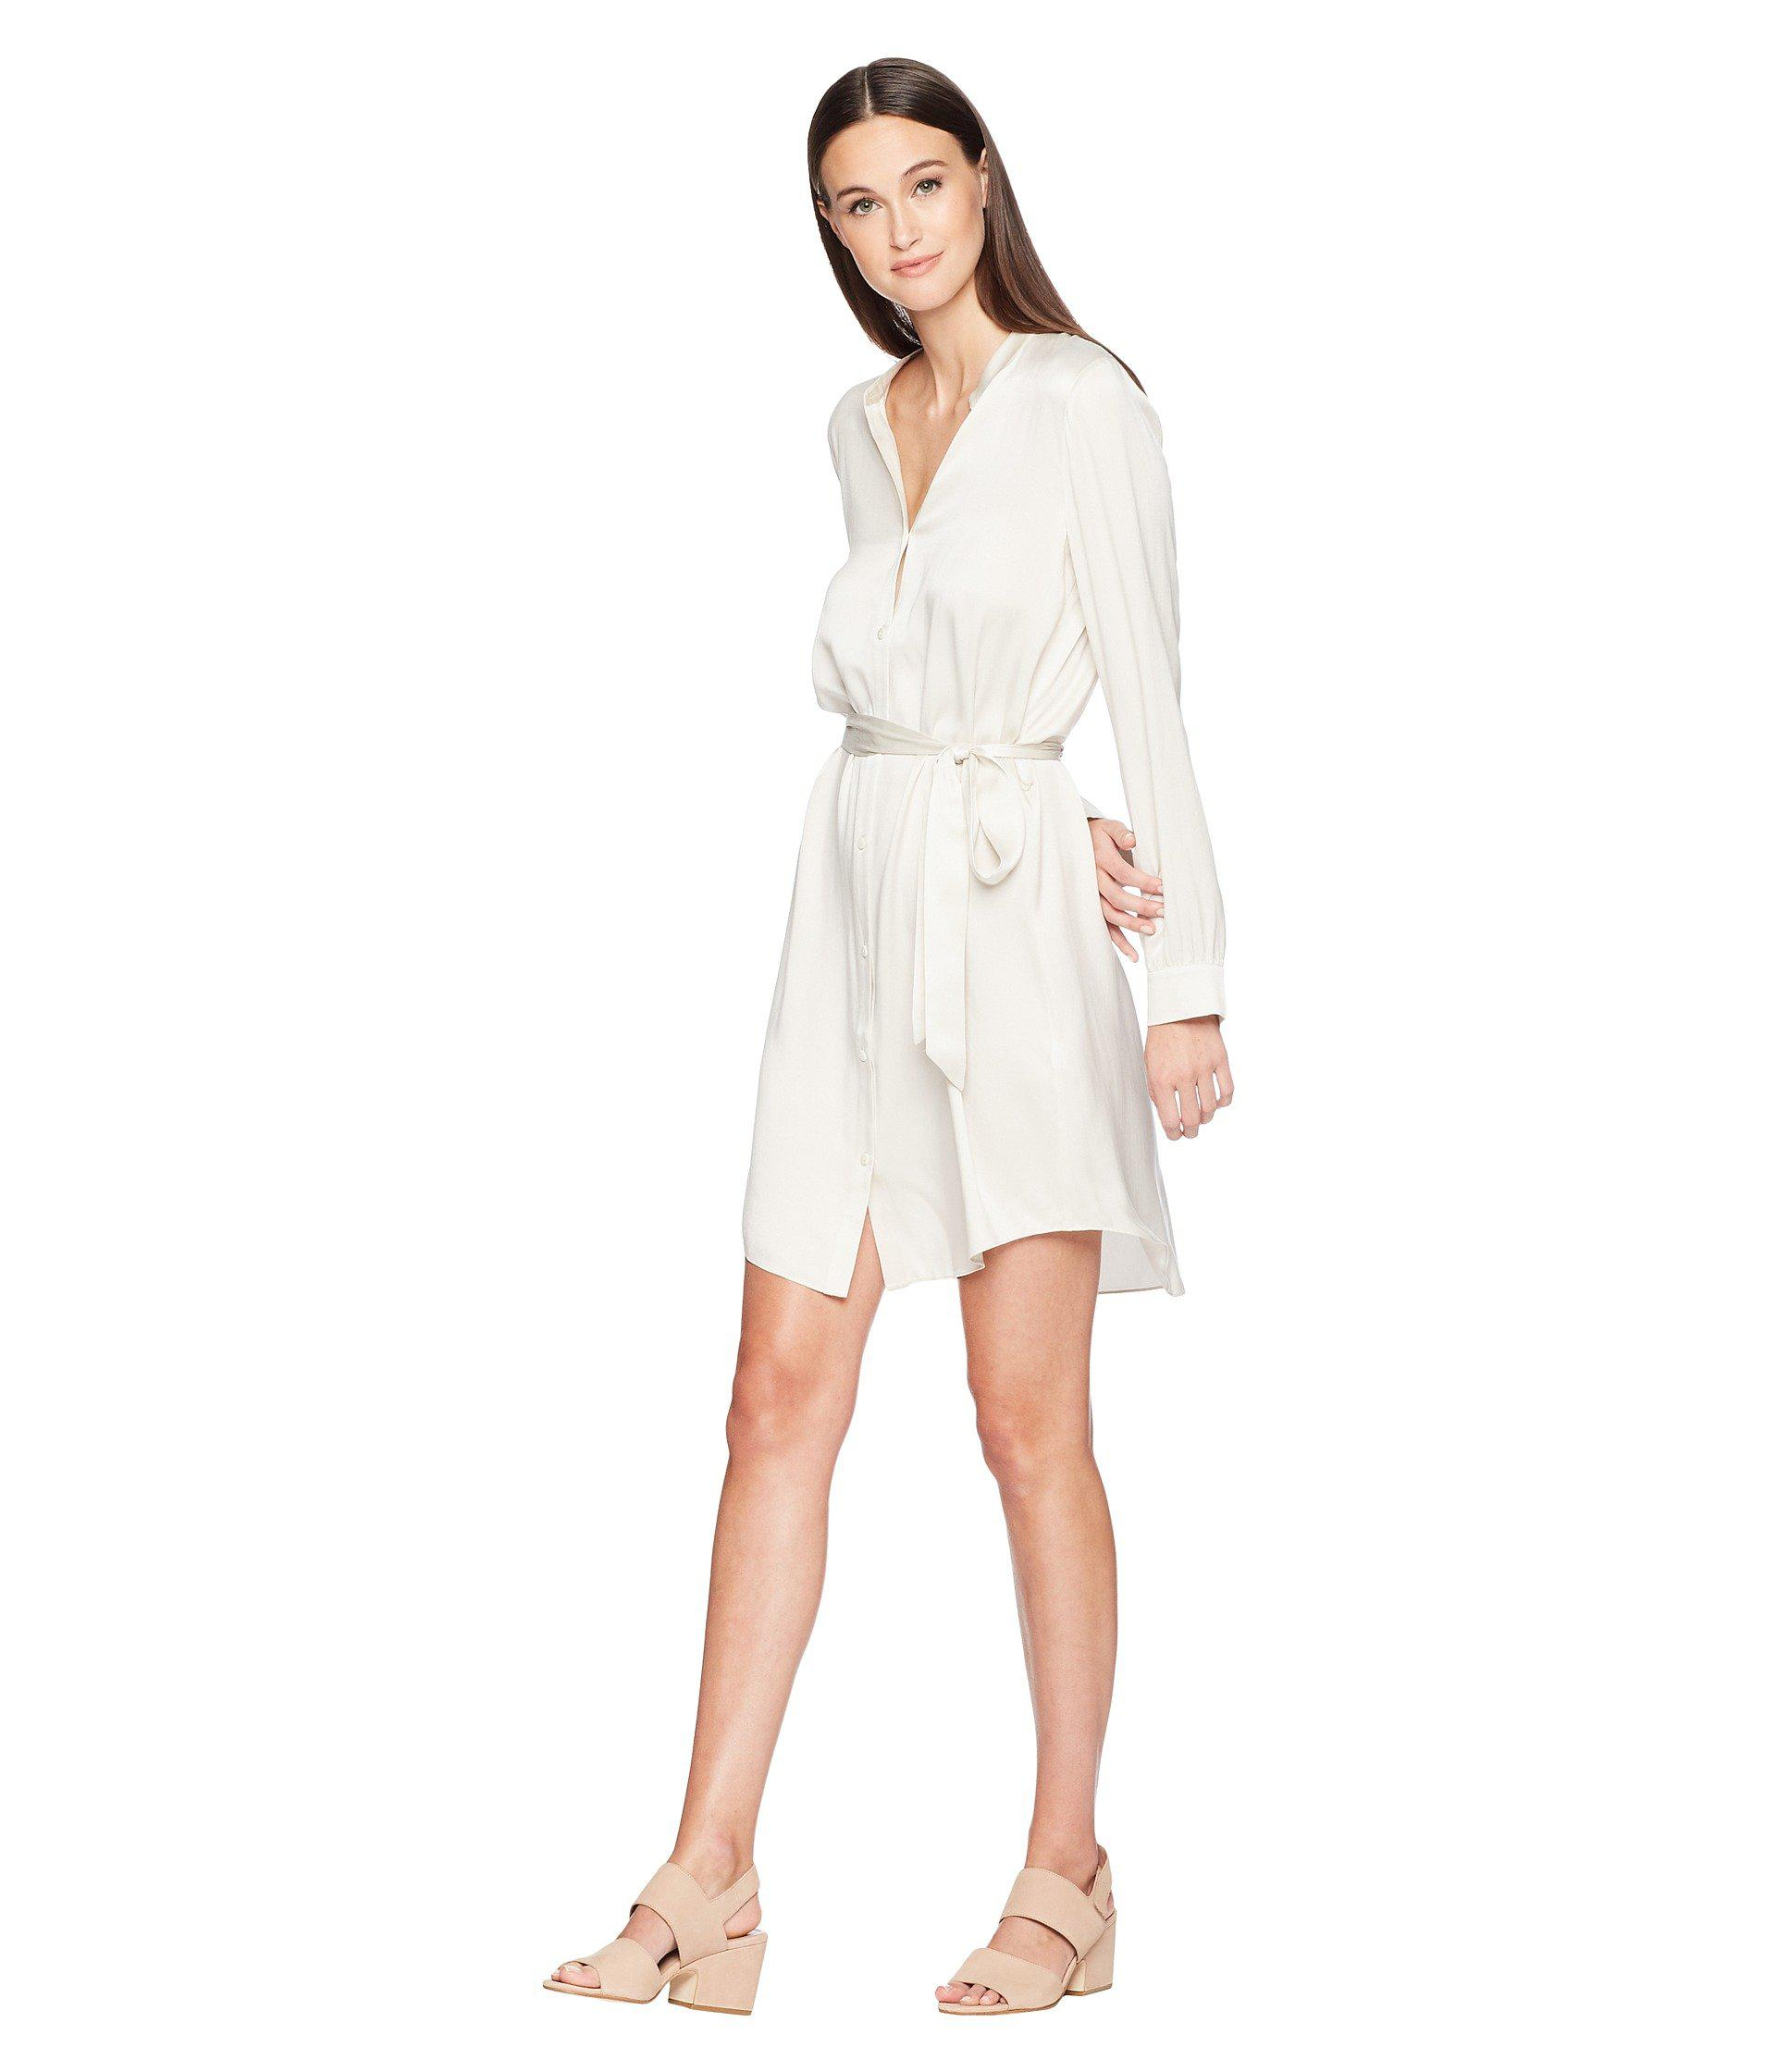 cbe13582a8df2 Eileen Fisher - White Silk Charmeuse Shirt Dress. - Lyst. View fullscreen